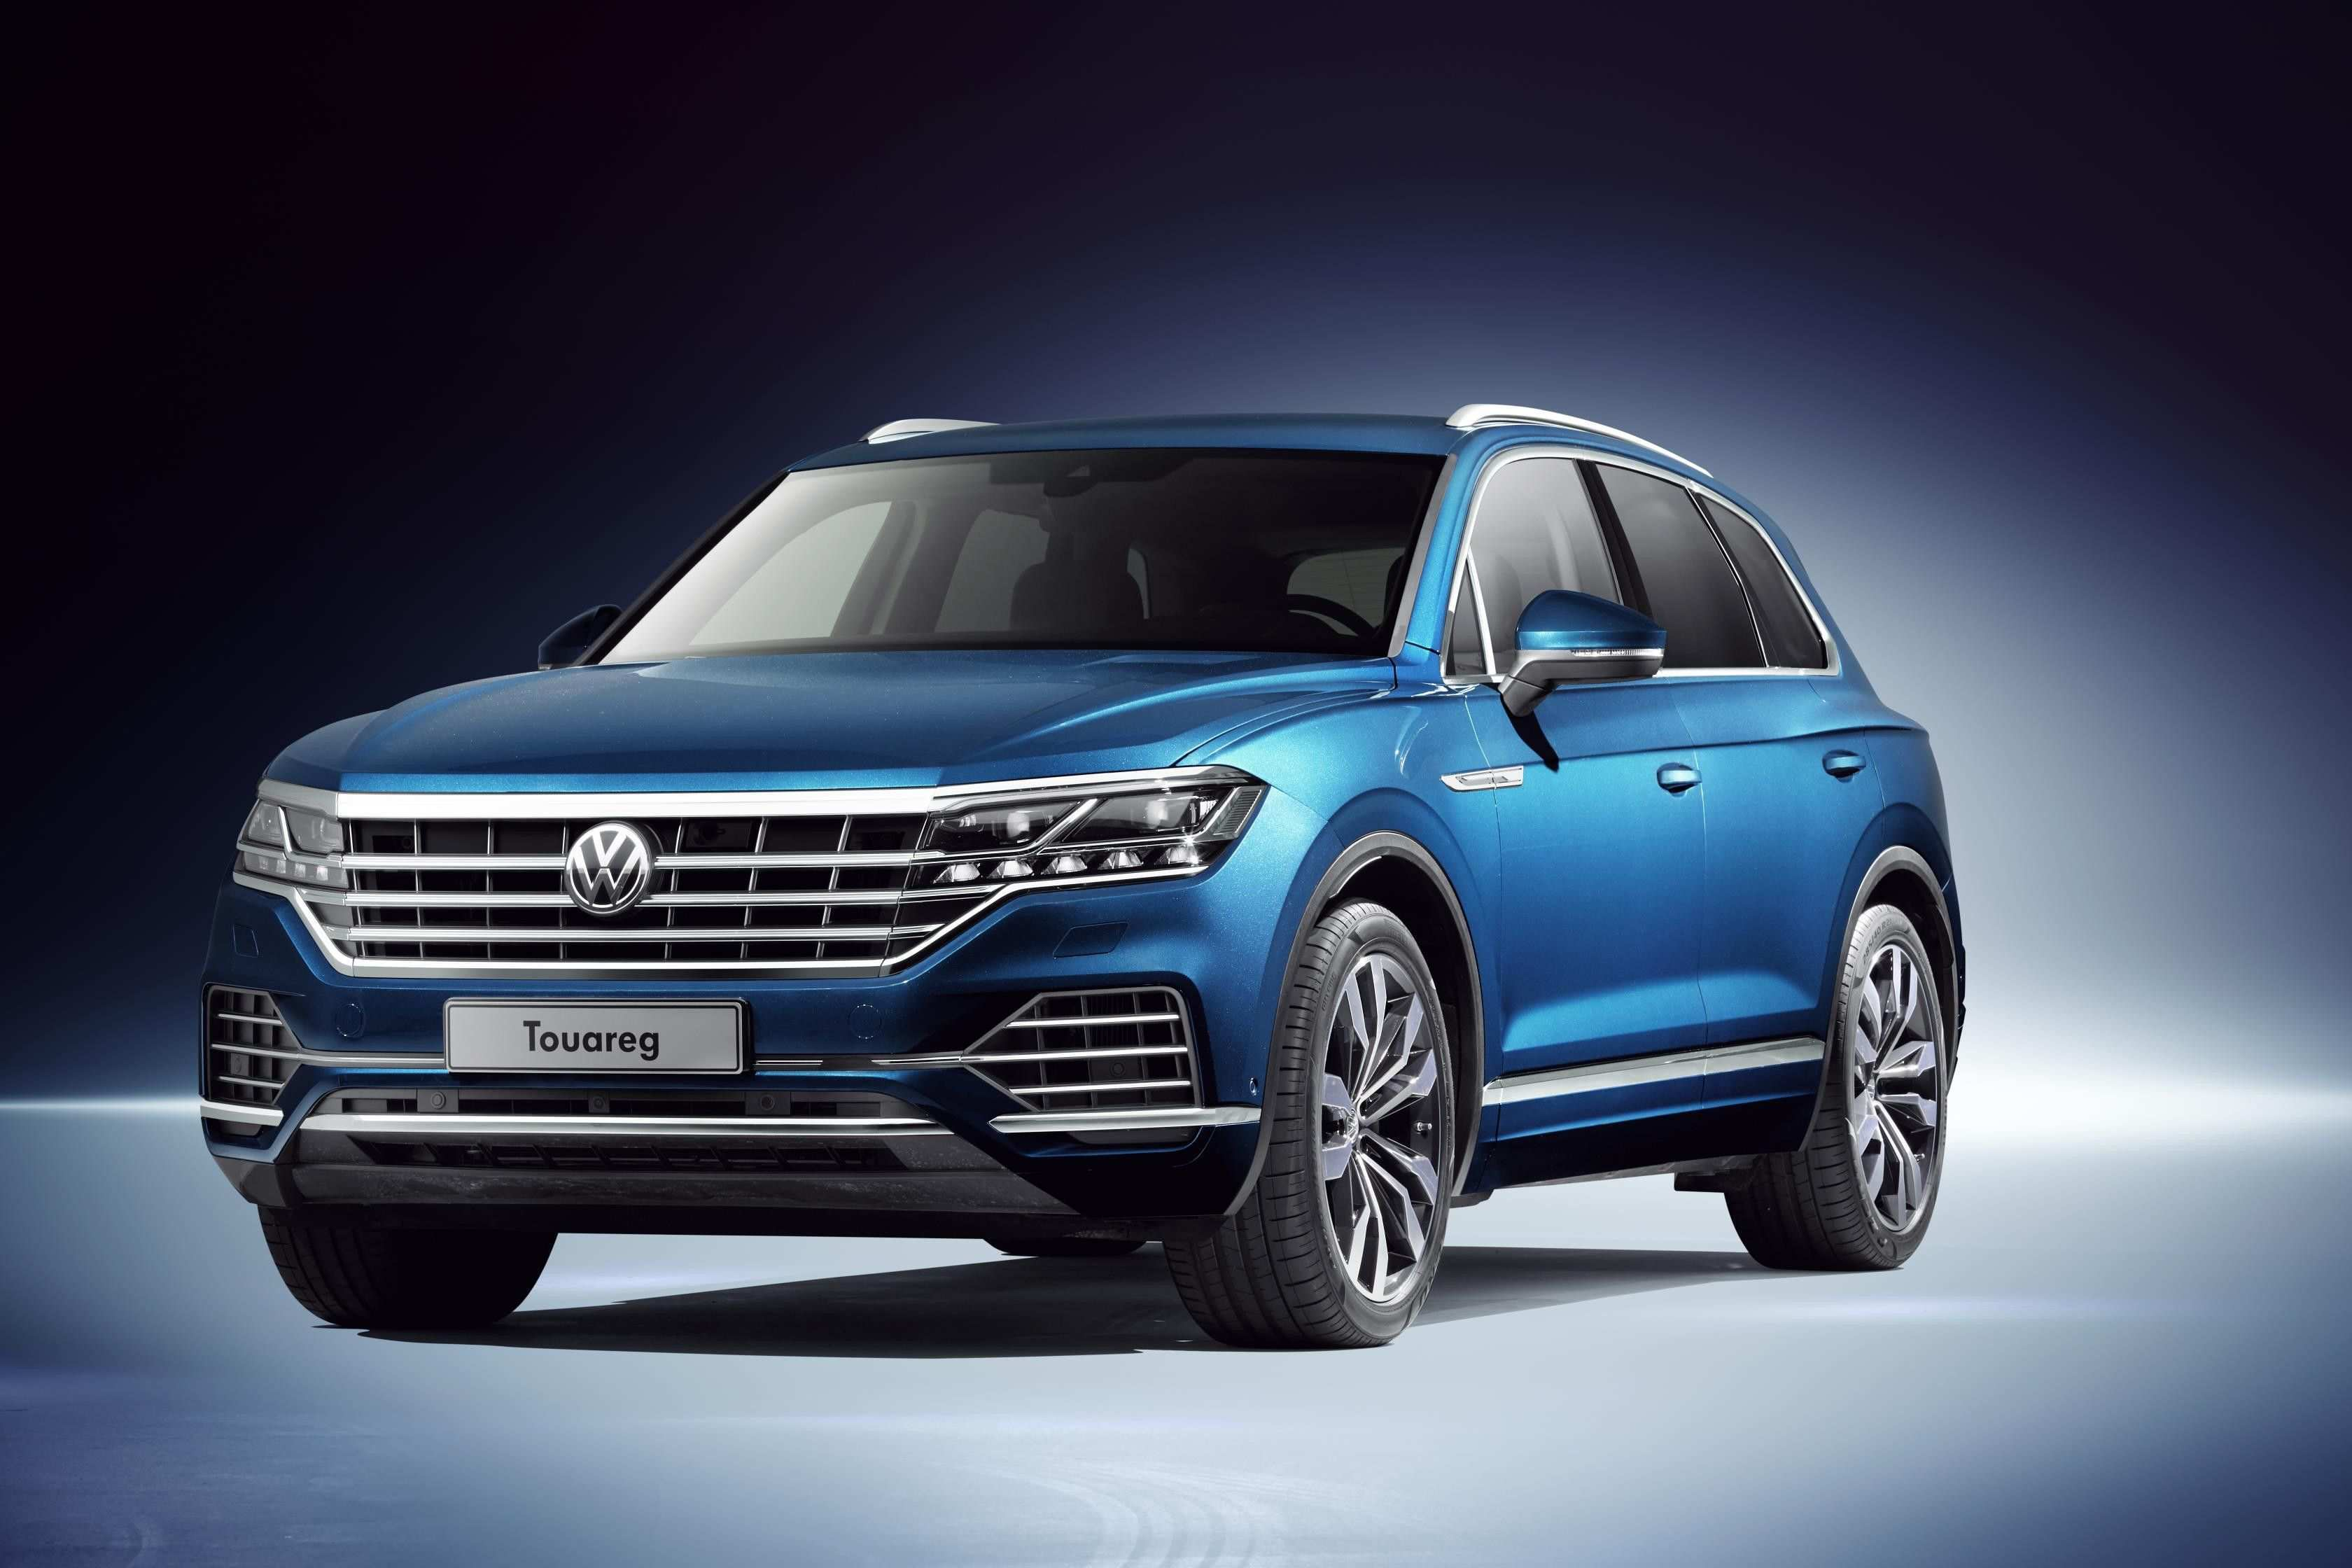 72 The Volkswagen Touareg 2020 Dimensions Configurations with Volkswagen Touareg 2020 Dimensions